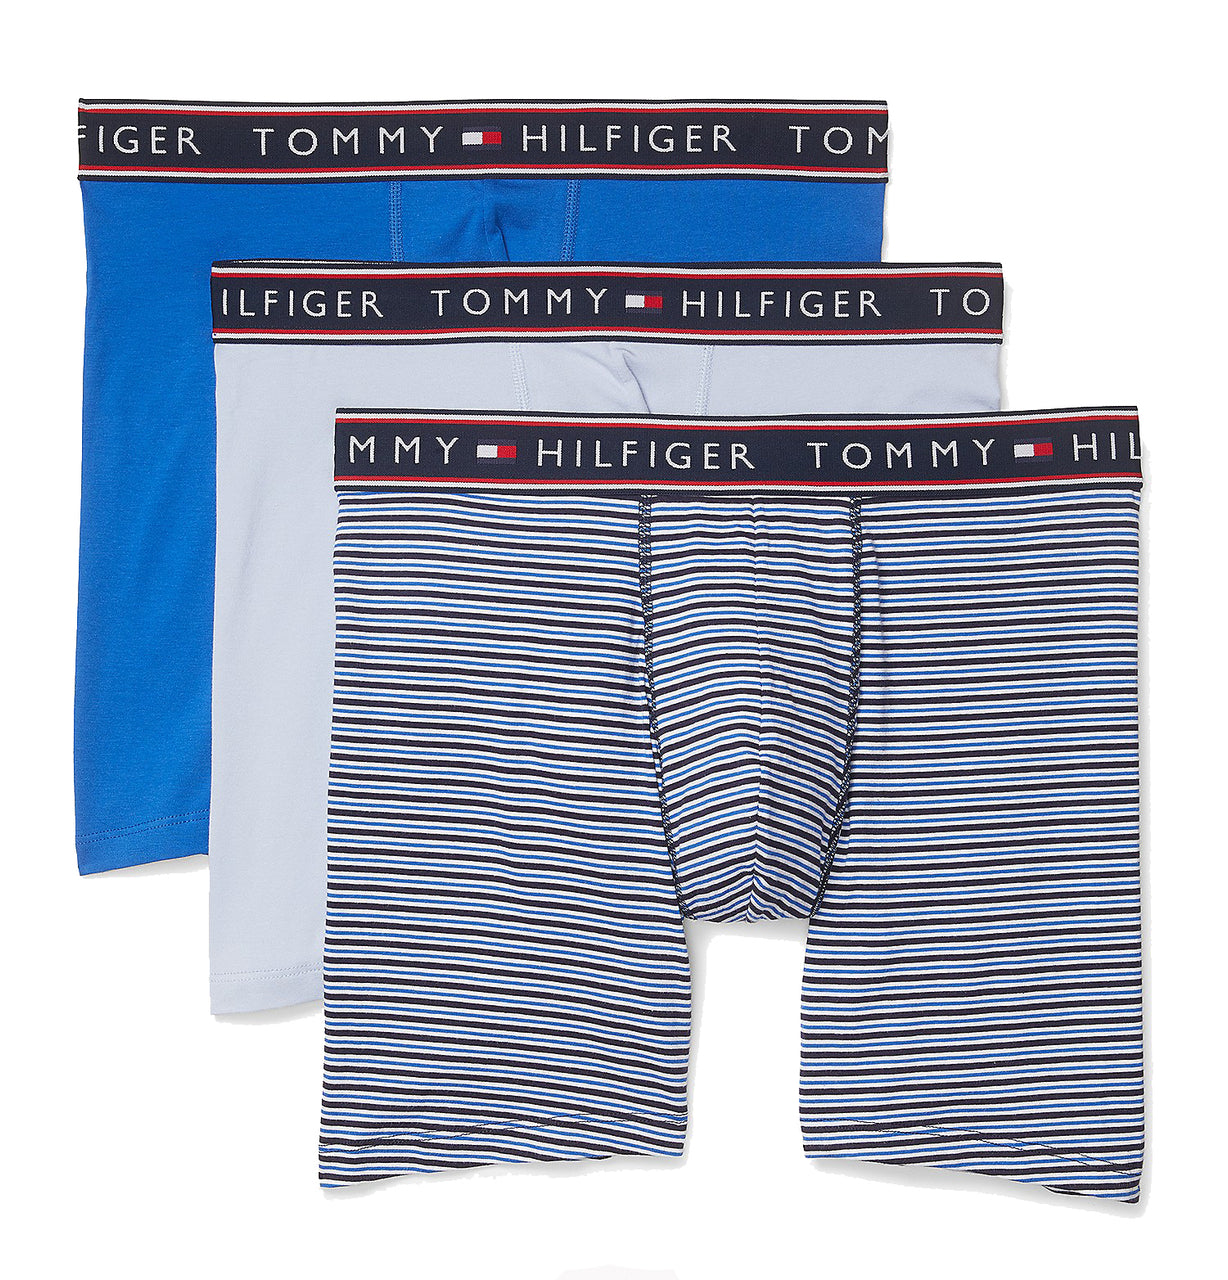 Tommy Hilfiger Men's 3 Pack Cotton Stretch Boxer Brief